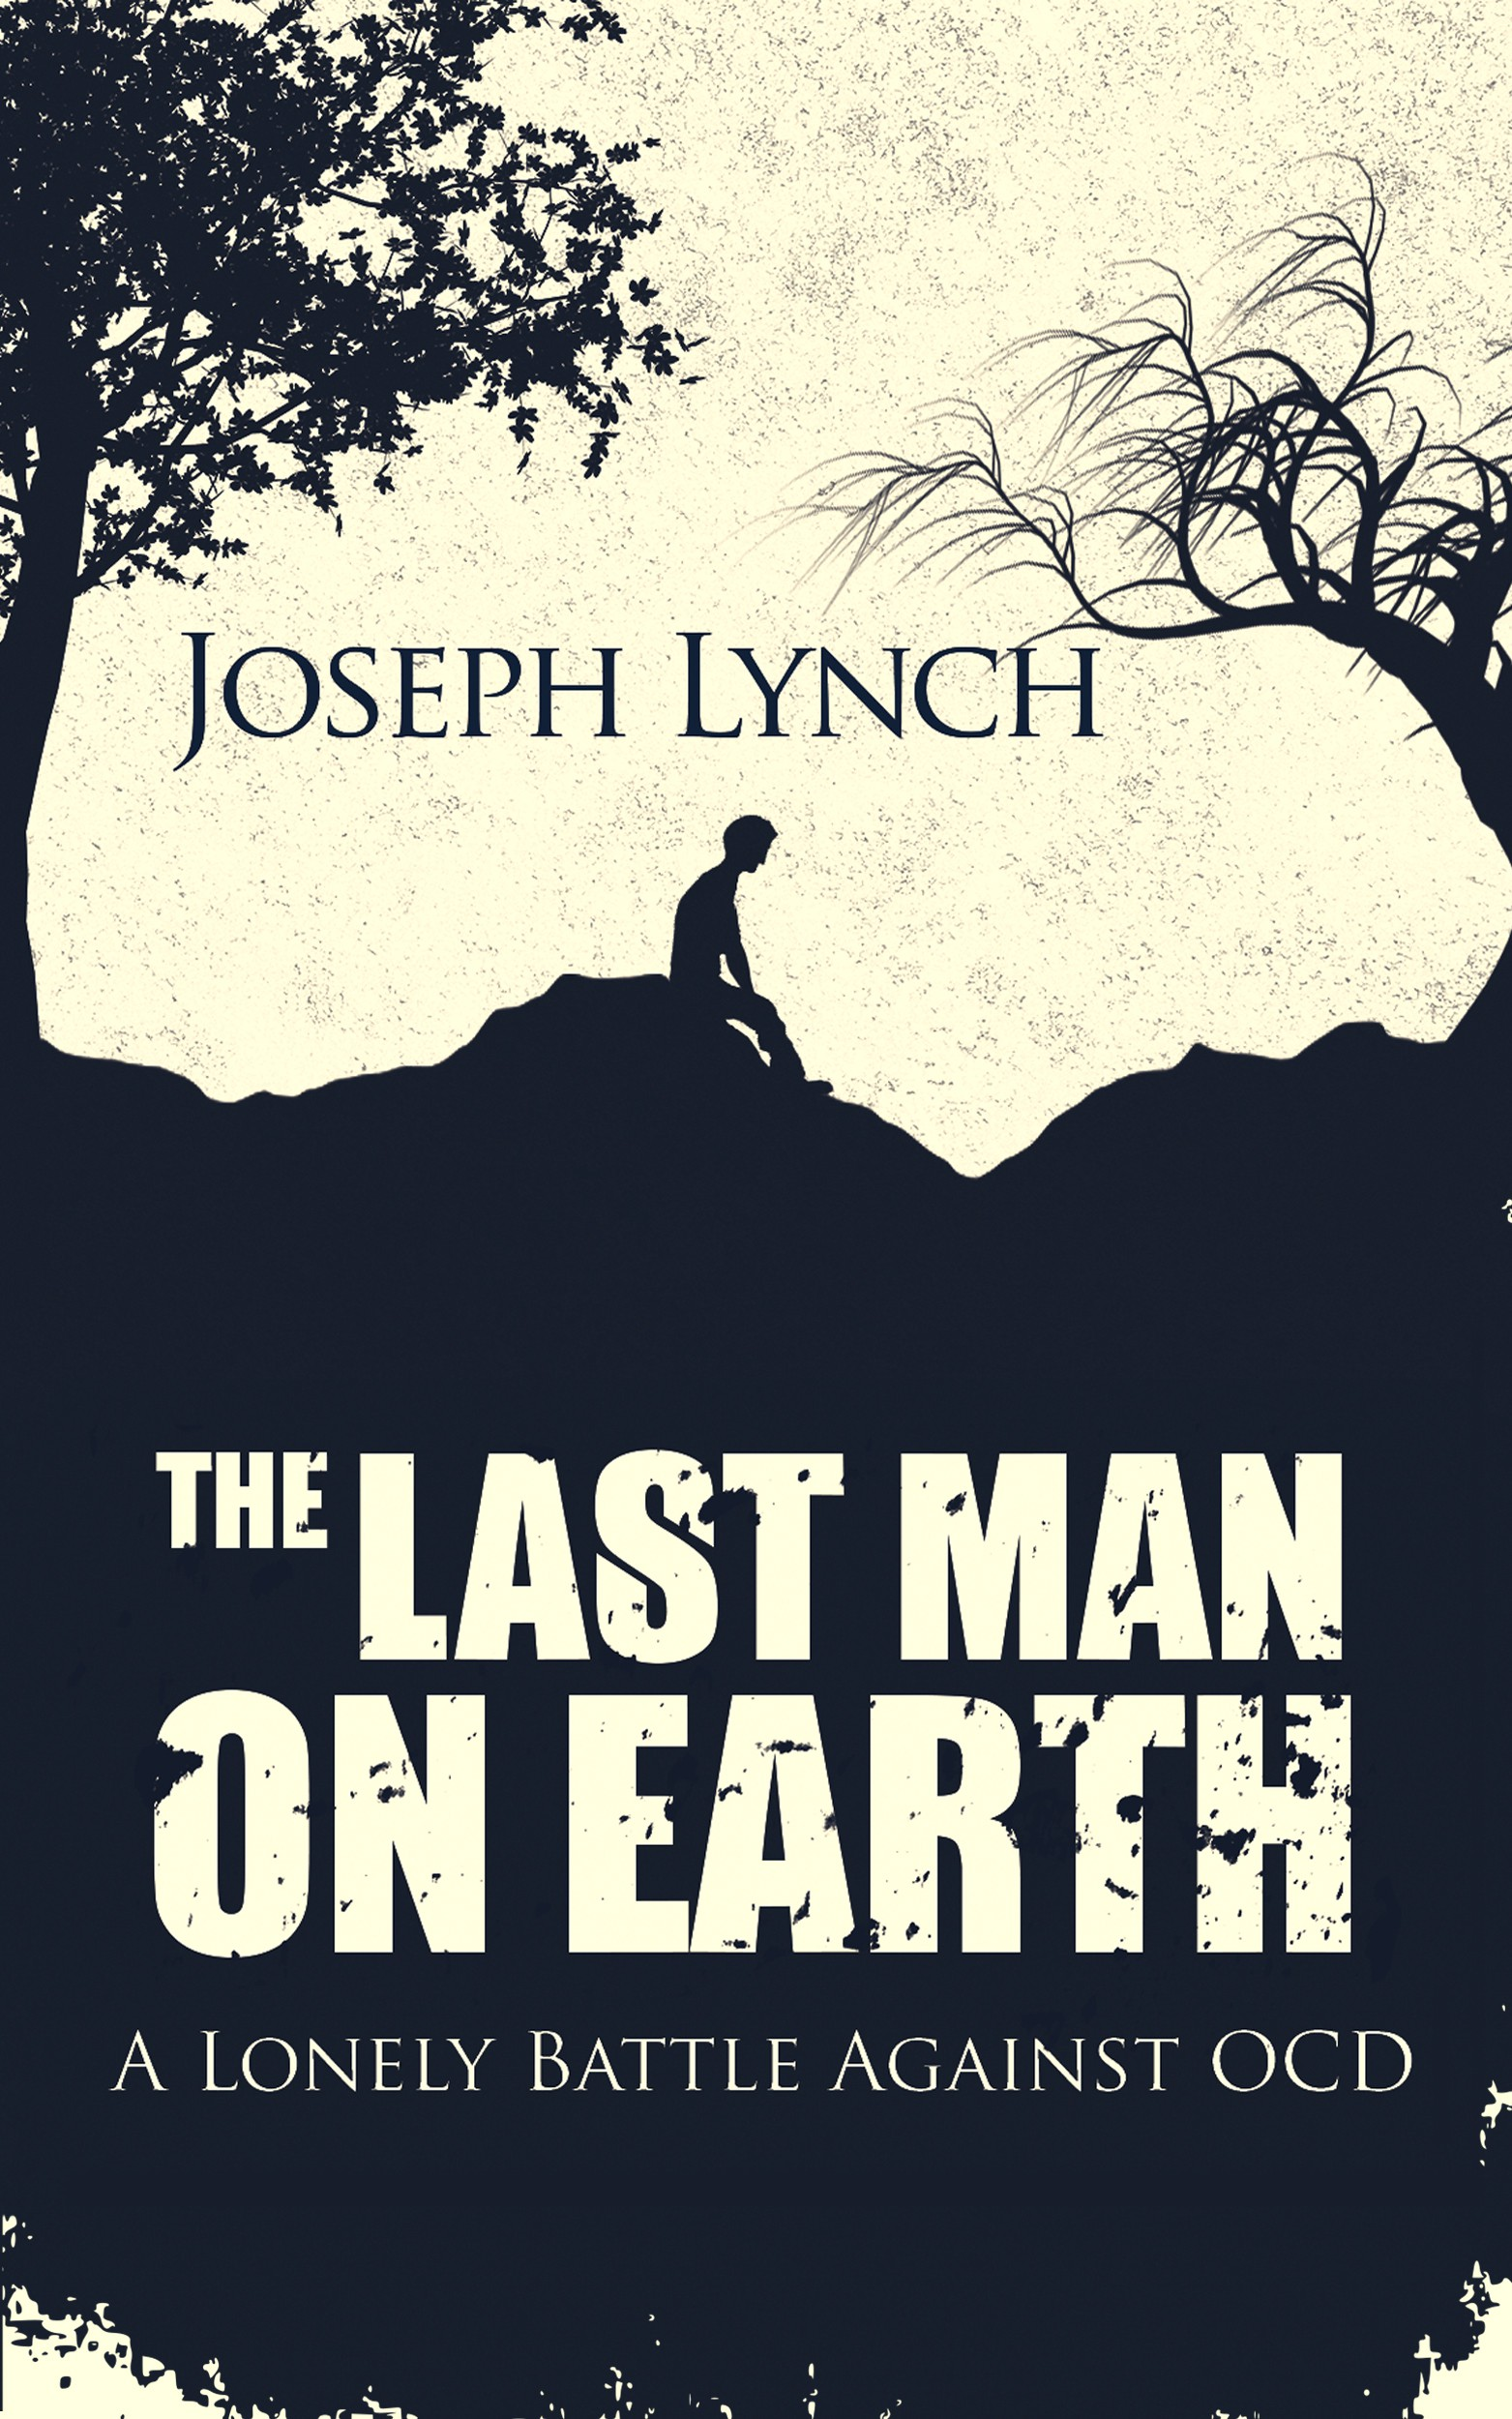 Create a cover for my ebook: The Last Man on Earth